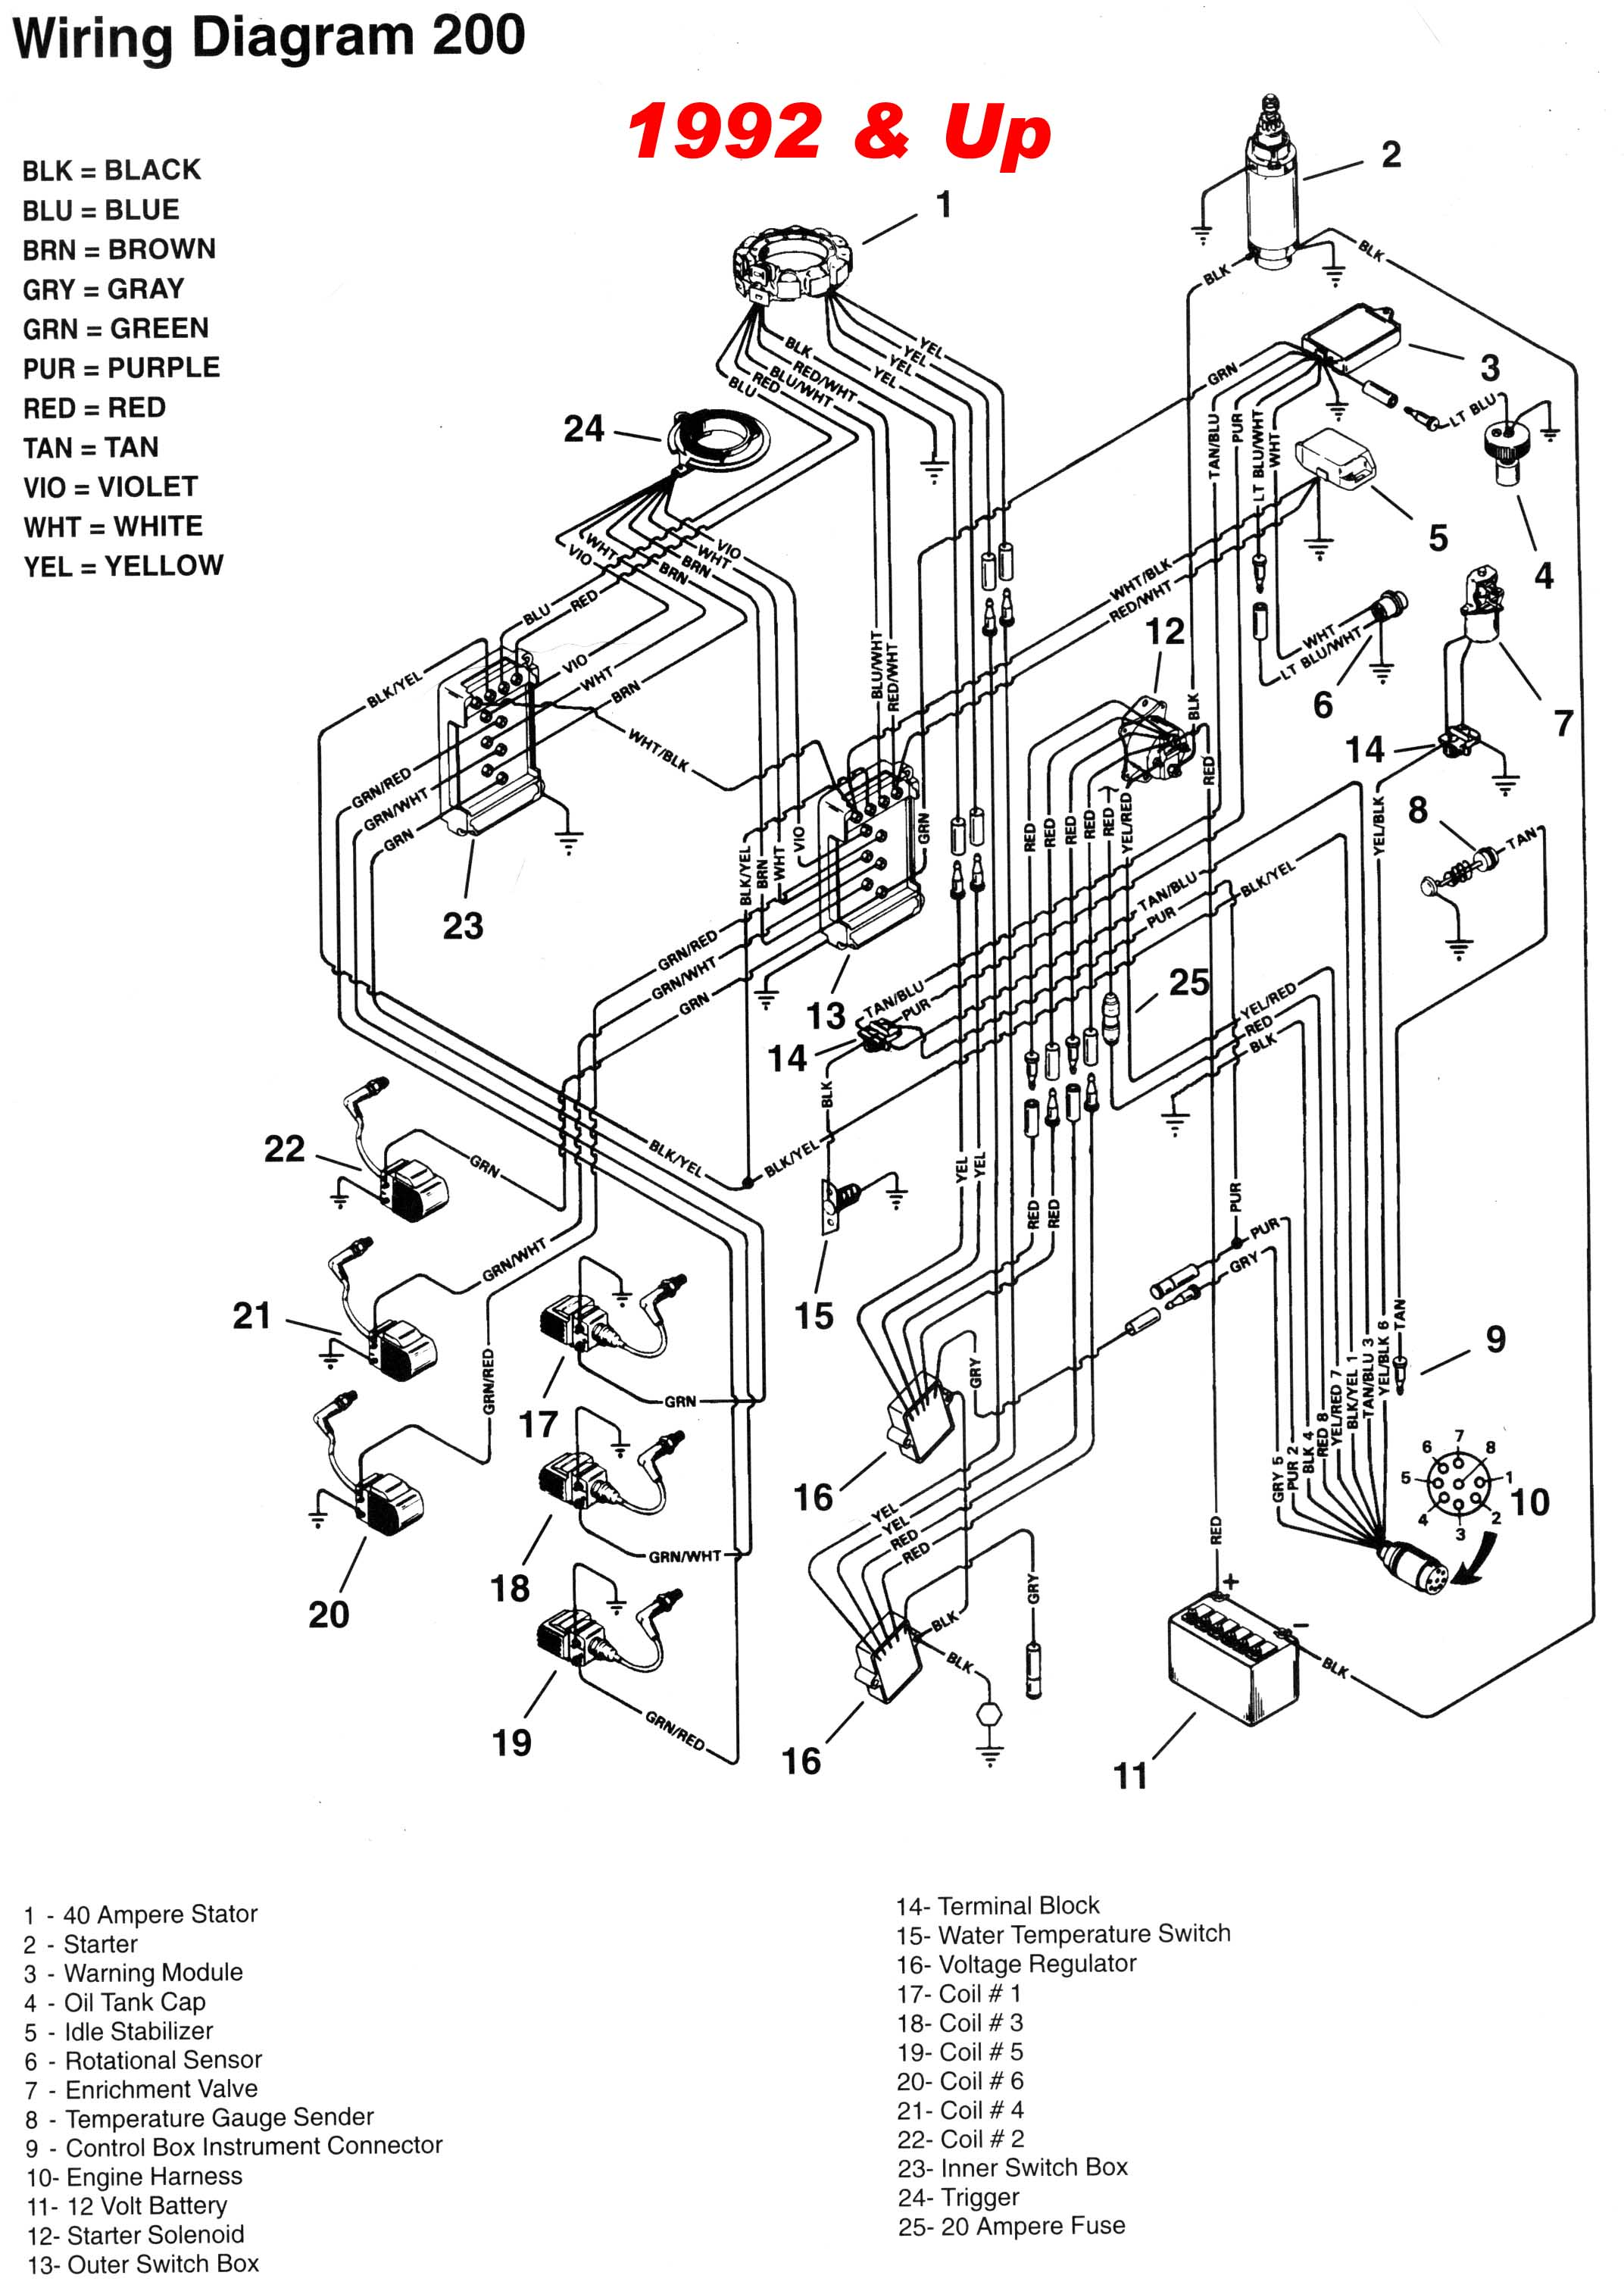 1978 Mercury Outboard Wiring Diagram - Wiring Block Diagram on chris craft wiring diagram, yamaha golf cart wiring diagram, yamaha road star wiring-diagram, yamaha wiring harness diagram, yamaha outboard diagnostic connector, smoker craft wiring diagram, yamaha outboard exhaust system, johnson outboard wiring diagram, sea hunt wiring diagram, tohatsu outboard wiring diagram, bennington wiring diagram, snowmobile wiring diagram, yamaha 703 remote control wiring diagram, yamaha gas wiring diagram, outboard starter wiring diagram, yamaha outboard relay, 1996 f150 fuel diagram, yamaha generator wiring diagram, yamaha tachometer 6y5-8350t-83-00, dexter wiring diagram,